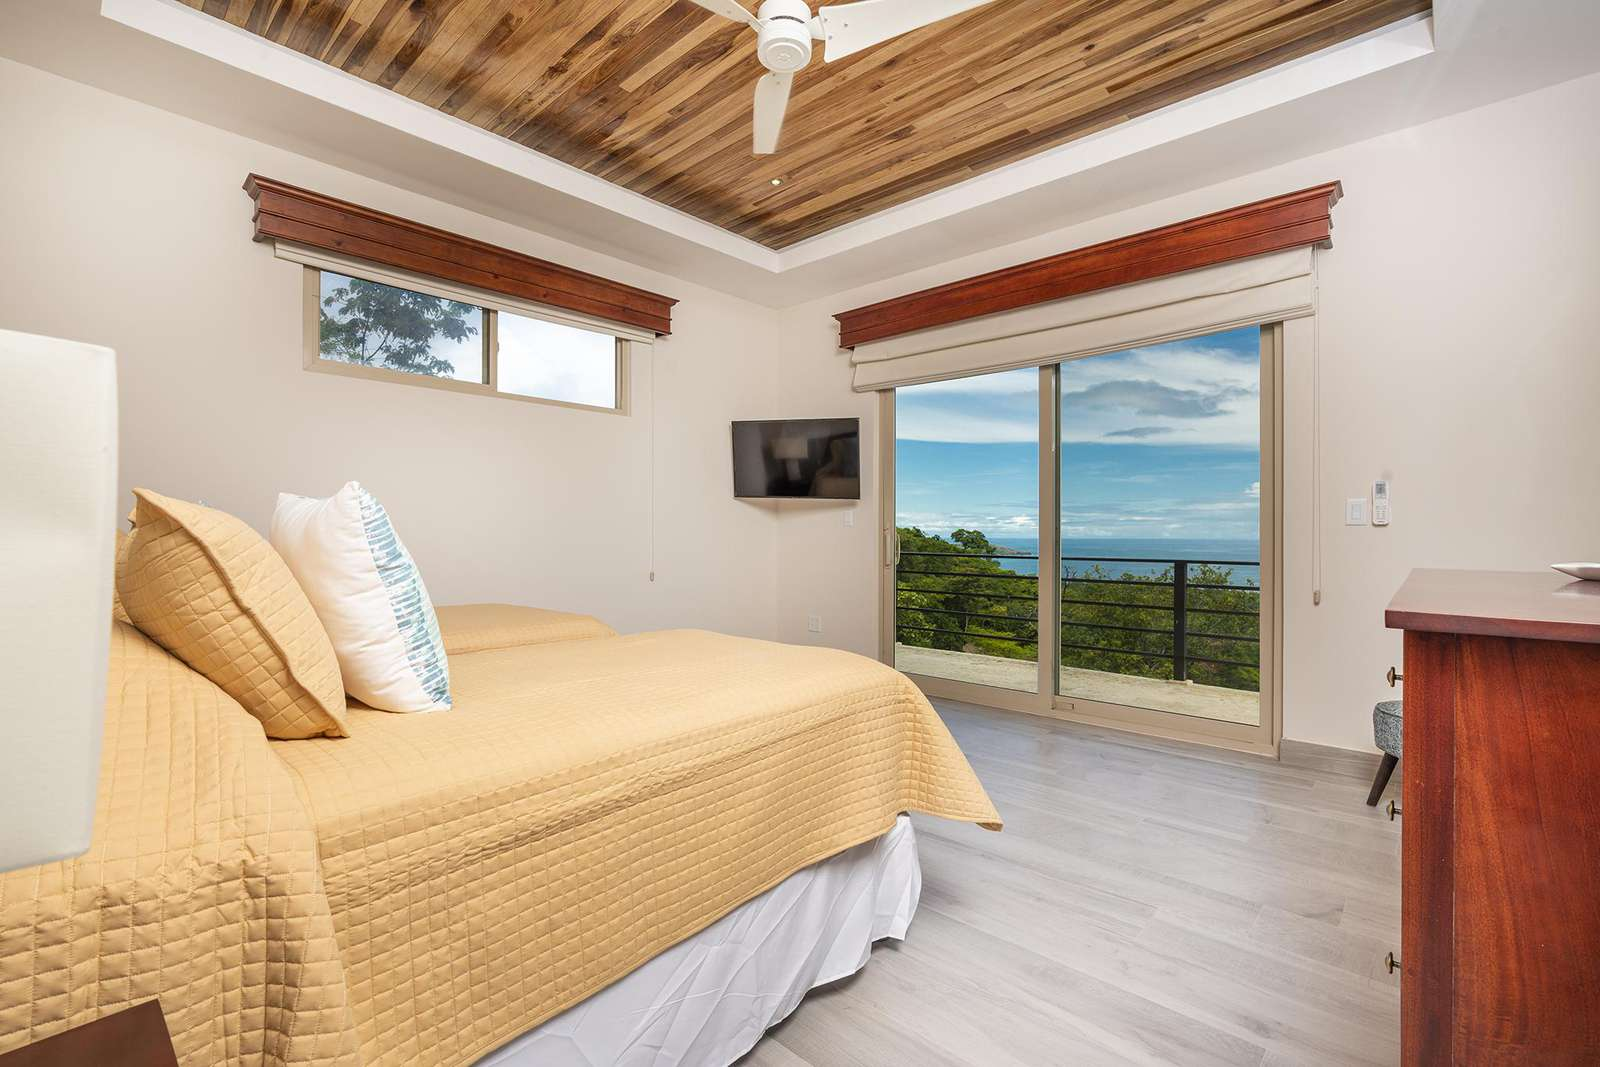 Guest bedroom #4, upstairs, 2 twin beds (can be formed into a king), ocean views